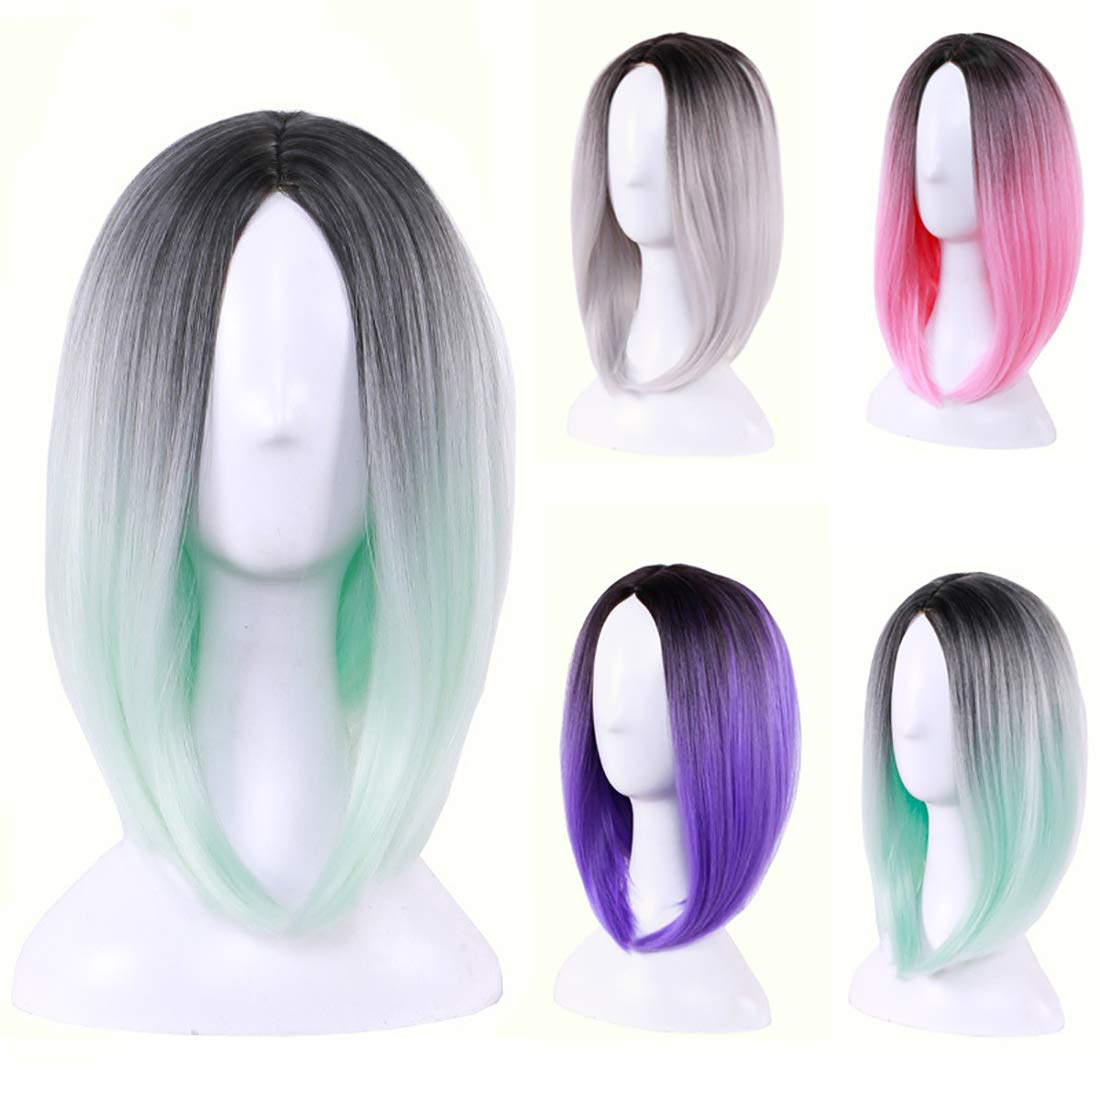 Wigood 12'' Short Bob Wig Ombre Green Straight Cosplay Wig with Free Wig Cap for Women